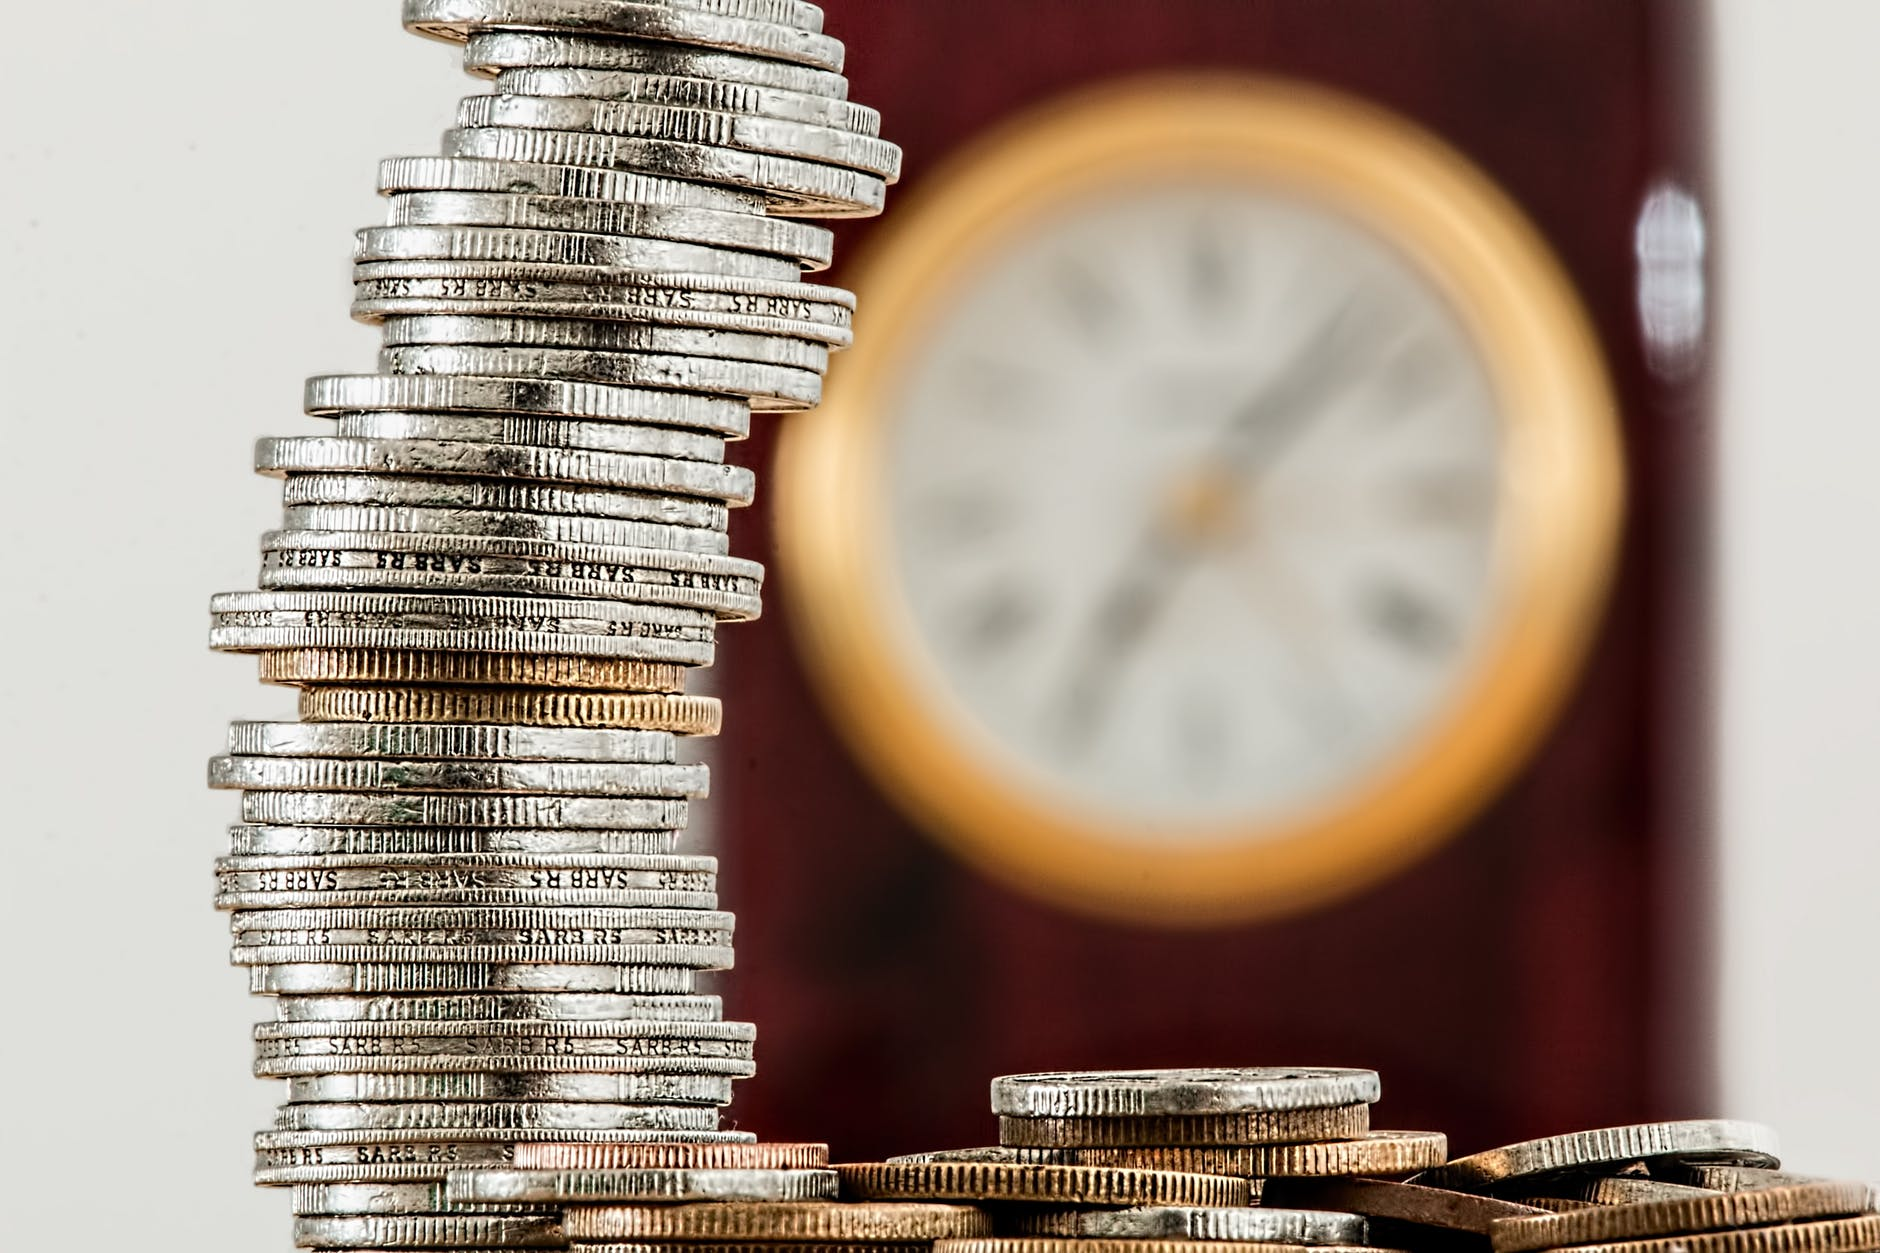 a stack of coins in front of a clock